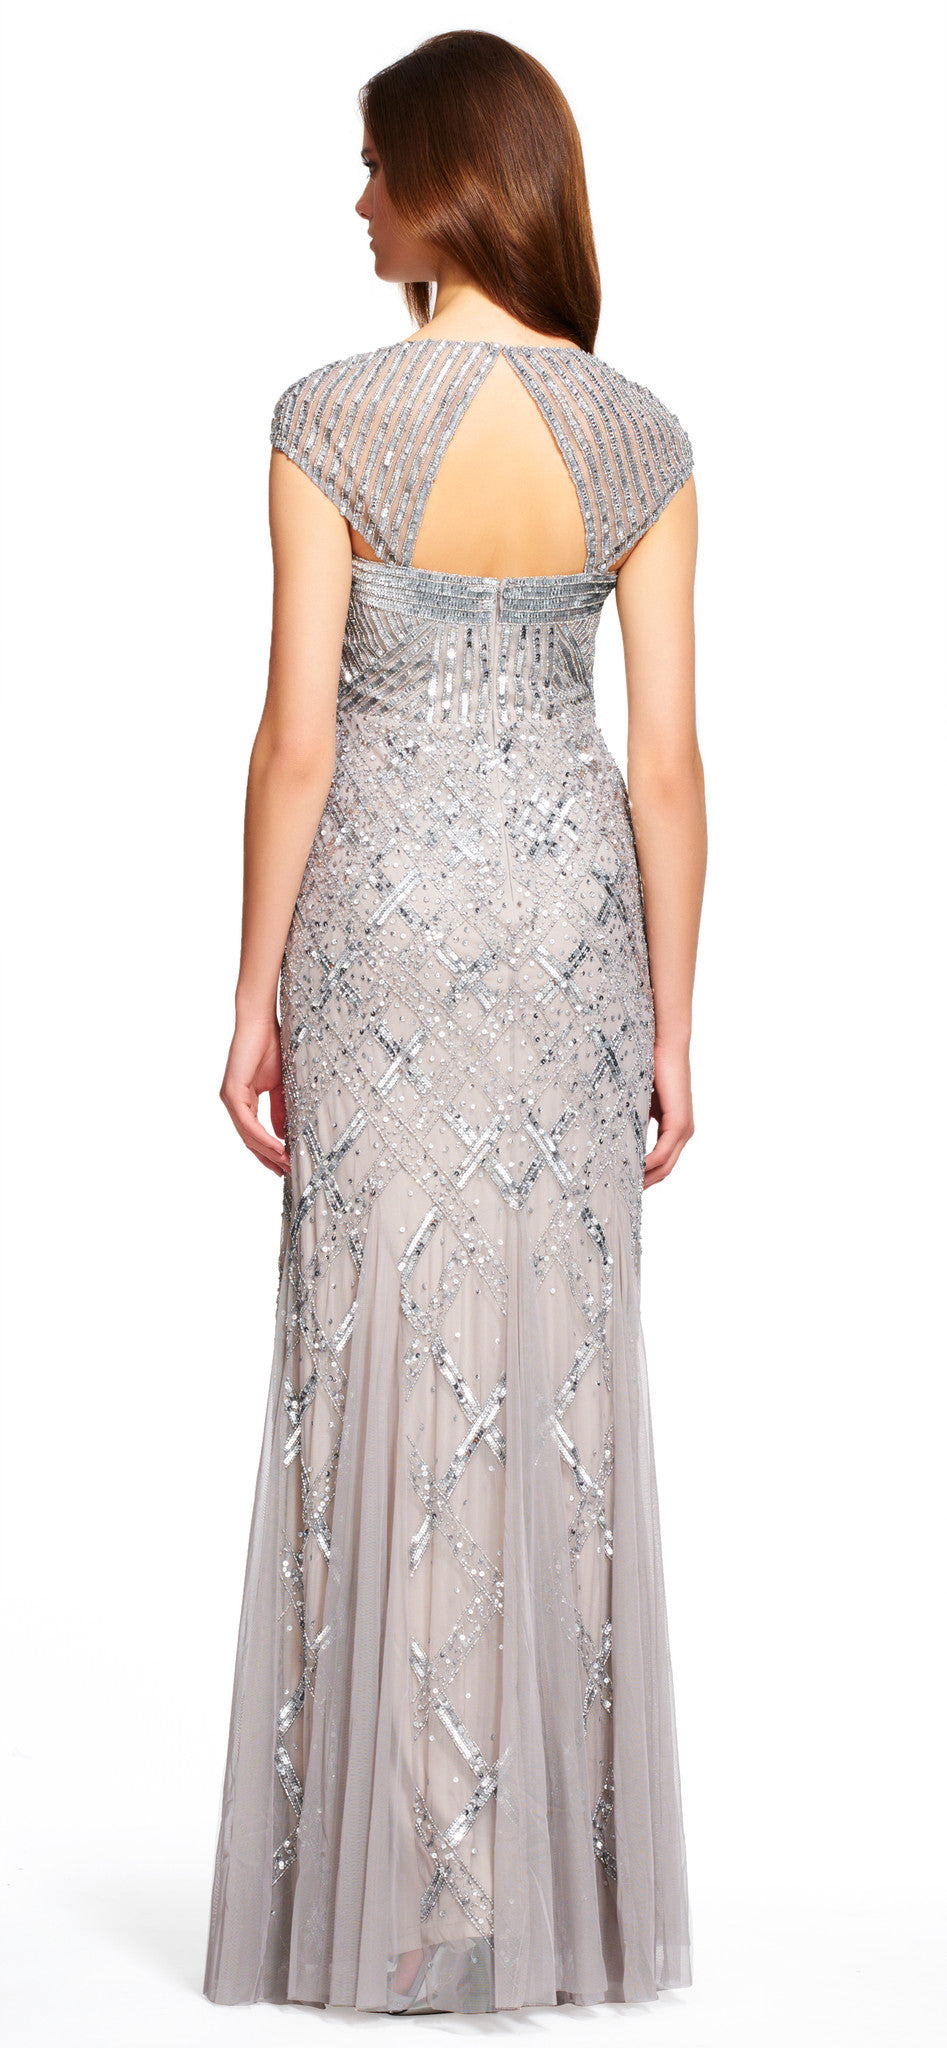 Adrianna Papell Cap Sleeve Beaded Gown - Platinum